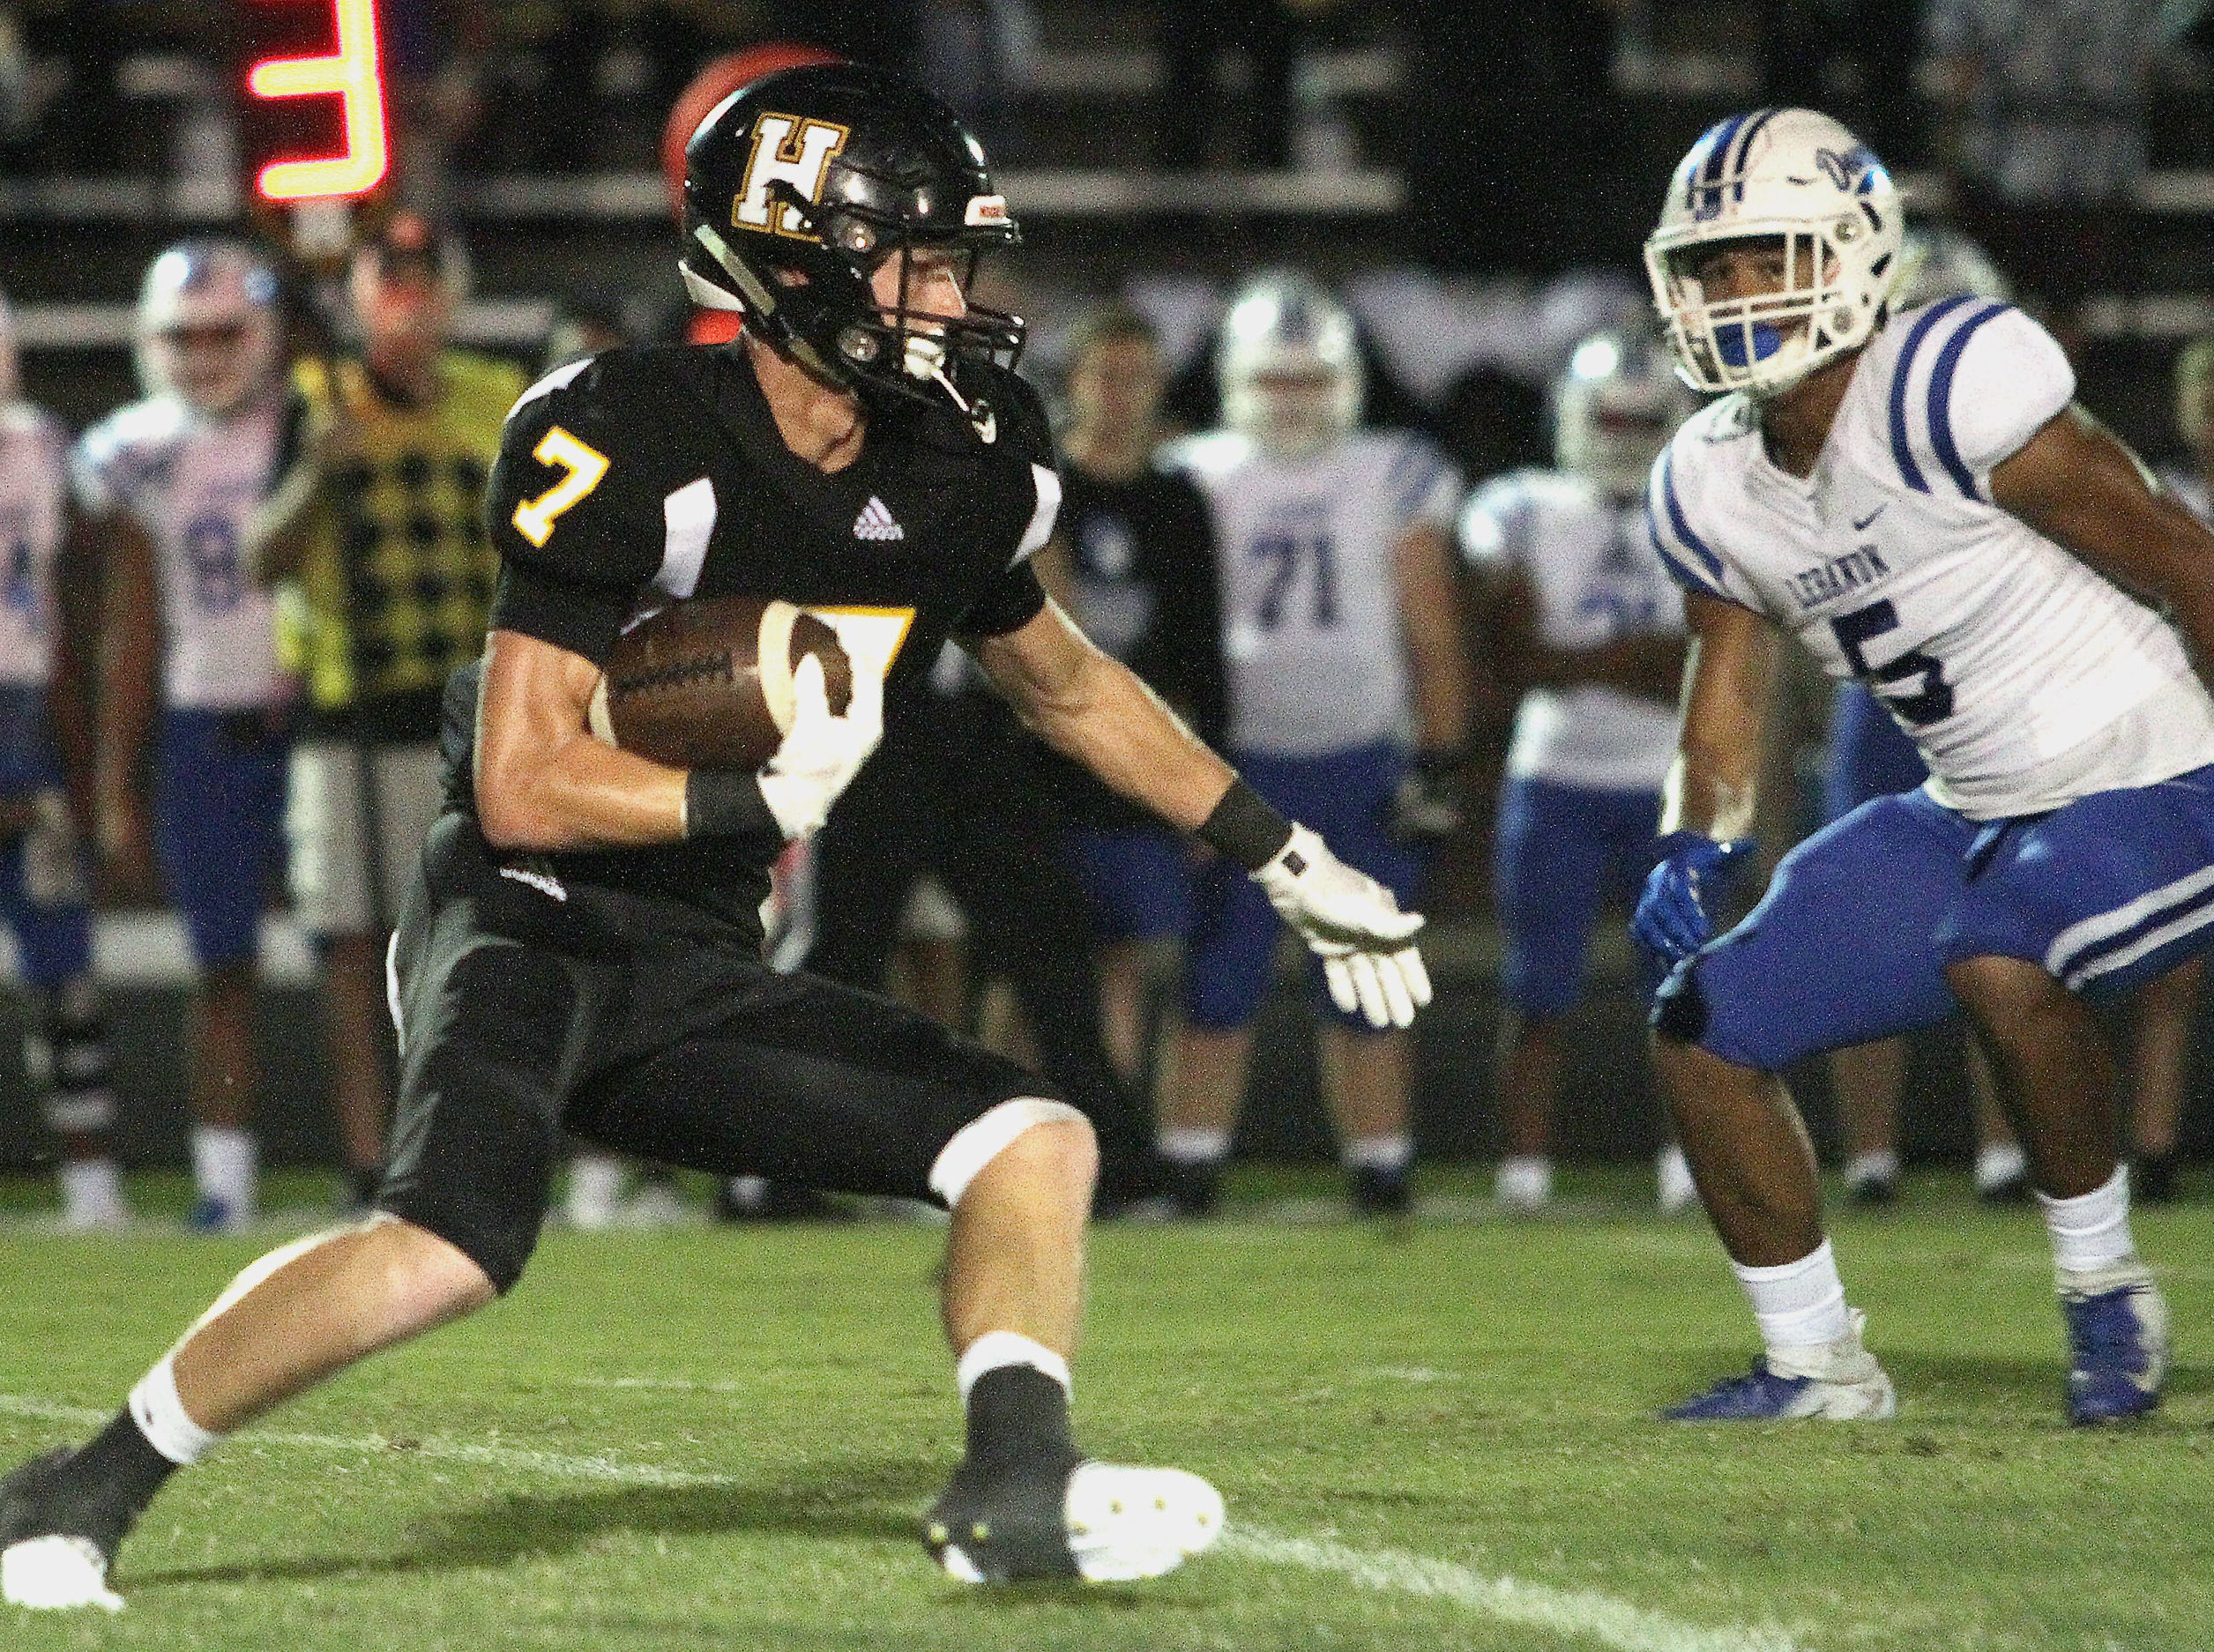 Hendersonville's Logan Spurrier rushes against Lebanon on Friday, September 14, 2018.